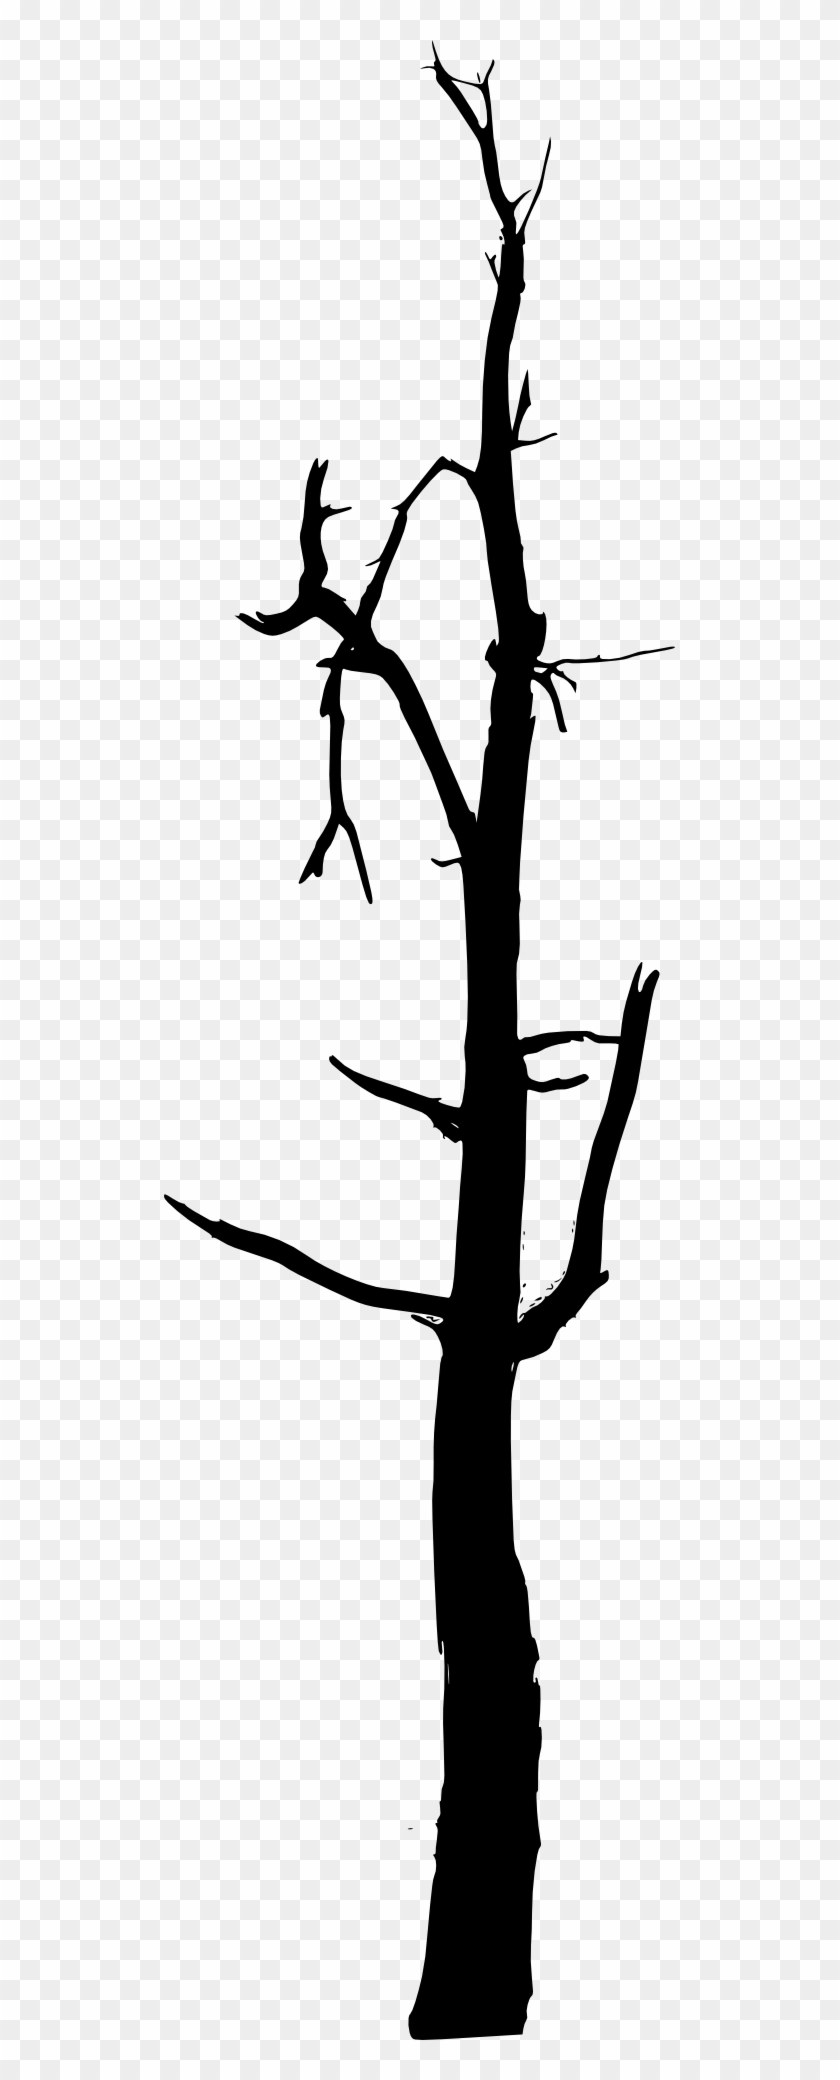 Bare Tree Silhouette Images - Bare Tree Silhouette Images #168